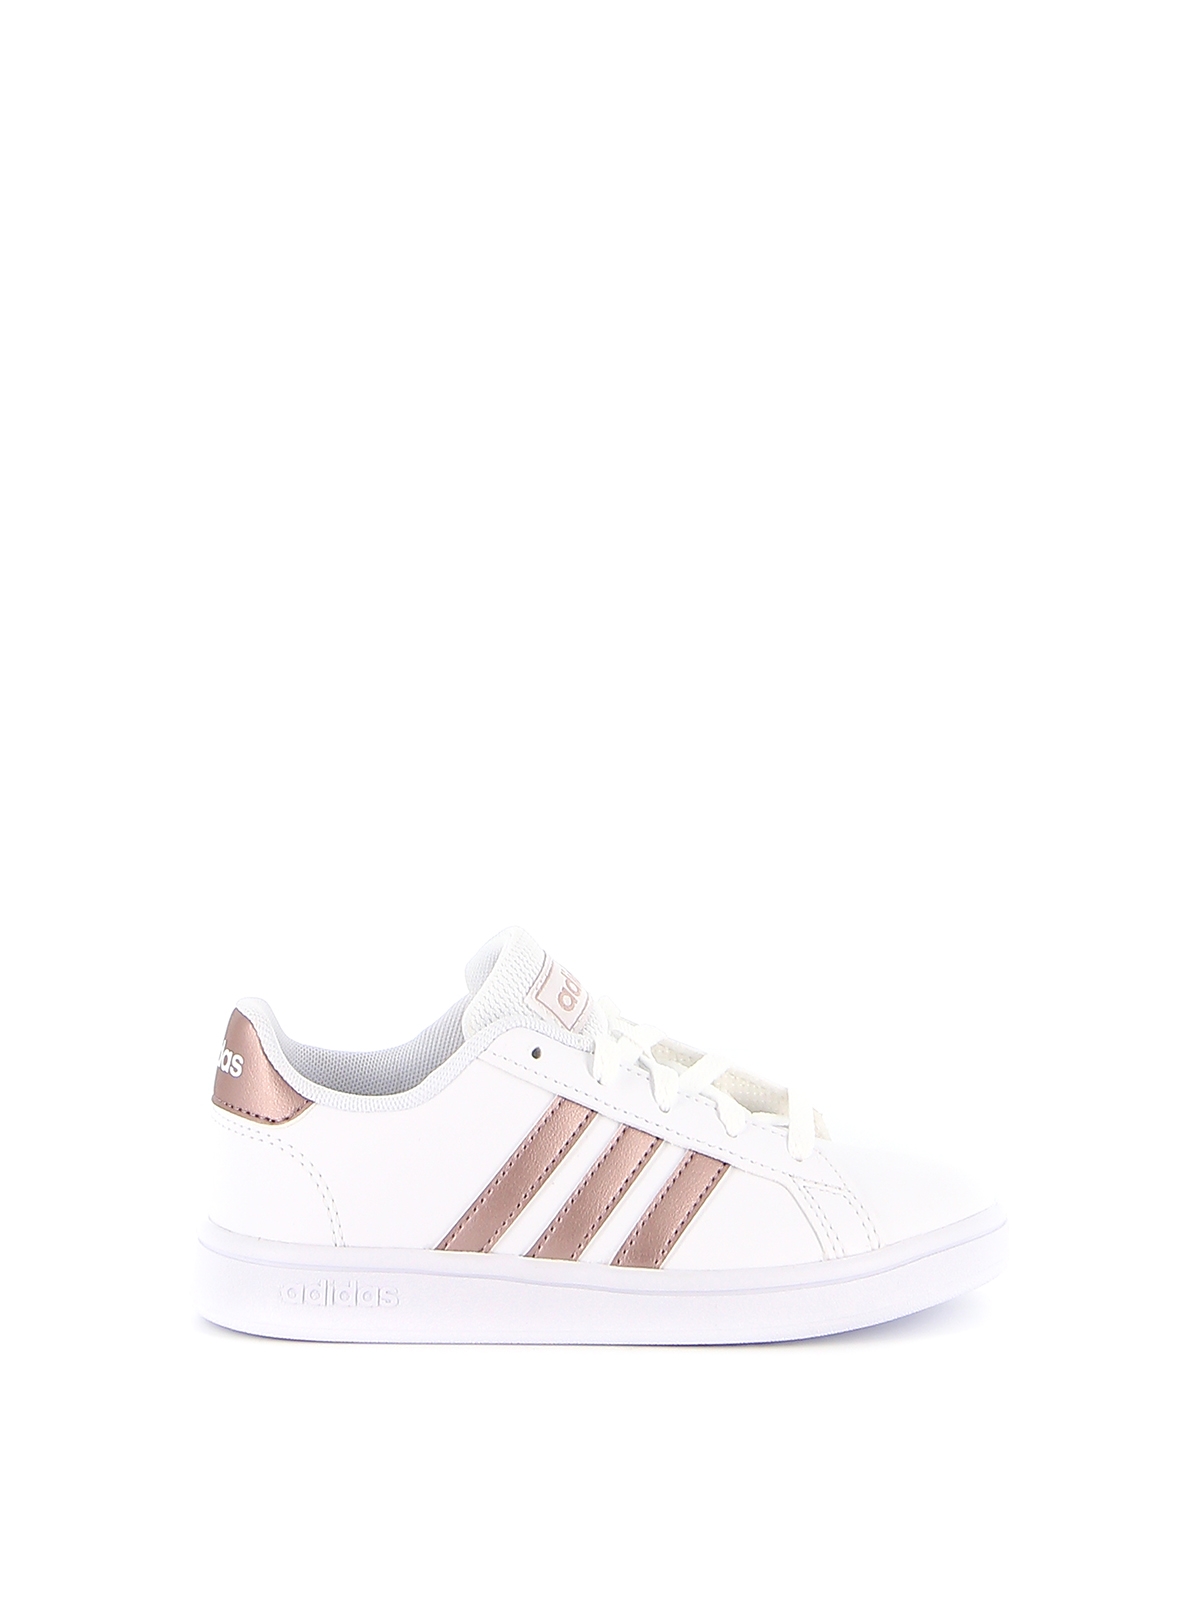 Adidas Originals - Grand Court K leather sneakers - trainers - EF0101